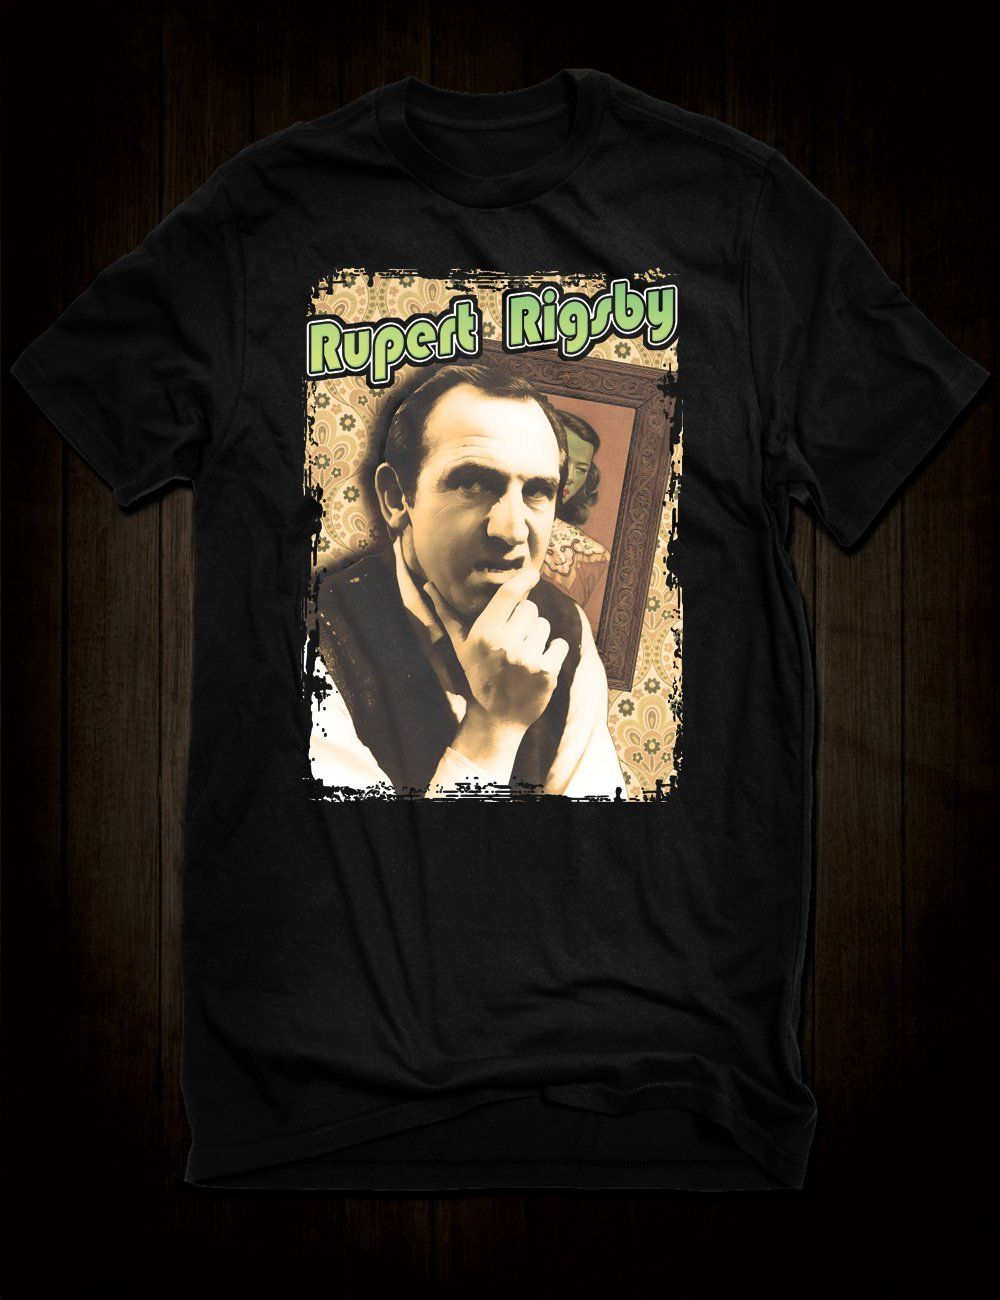 5f017ae1f1858 Rupert Rigsby T-Shirt - Small in 2018